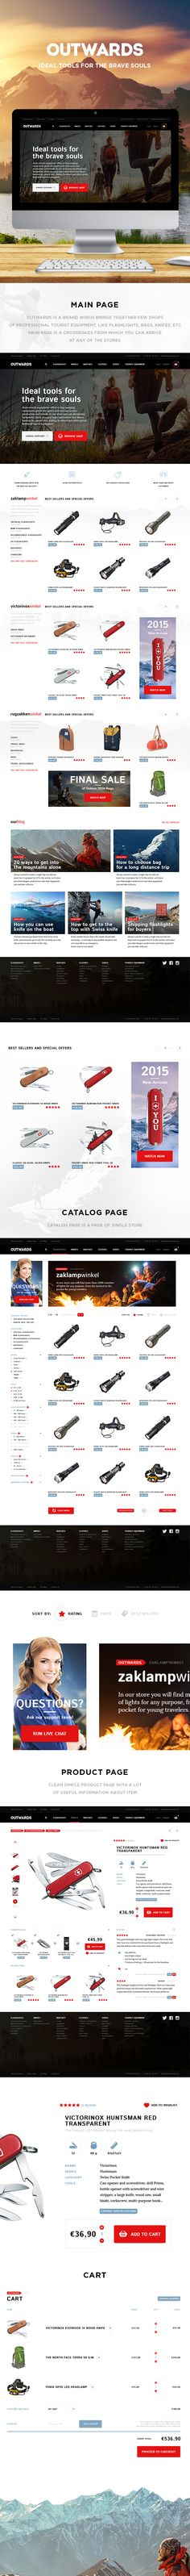 Outwards on Behance